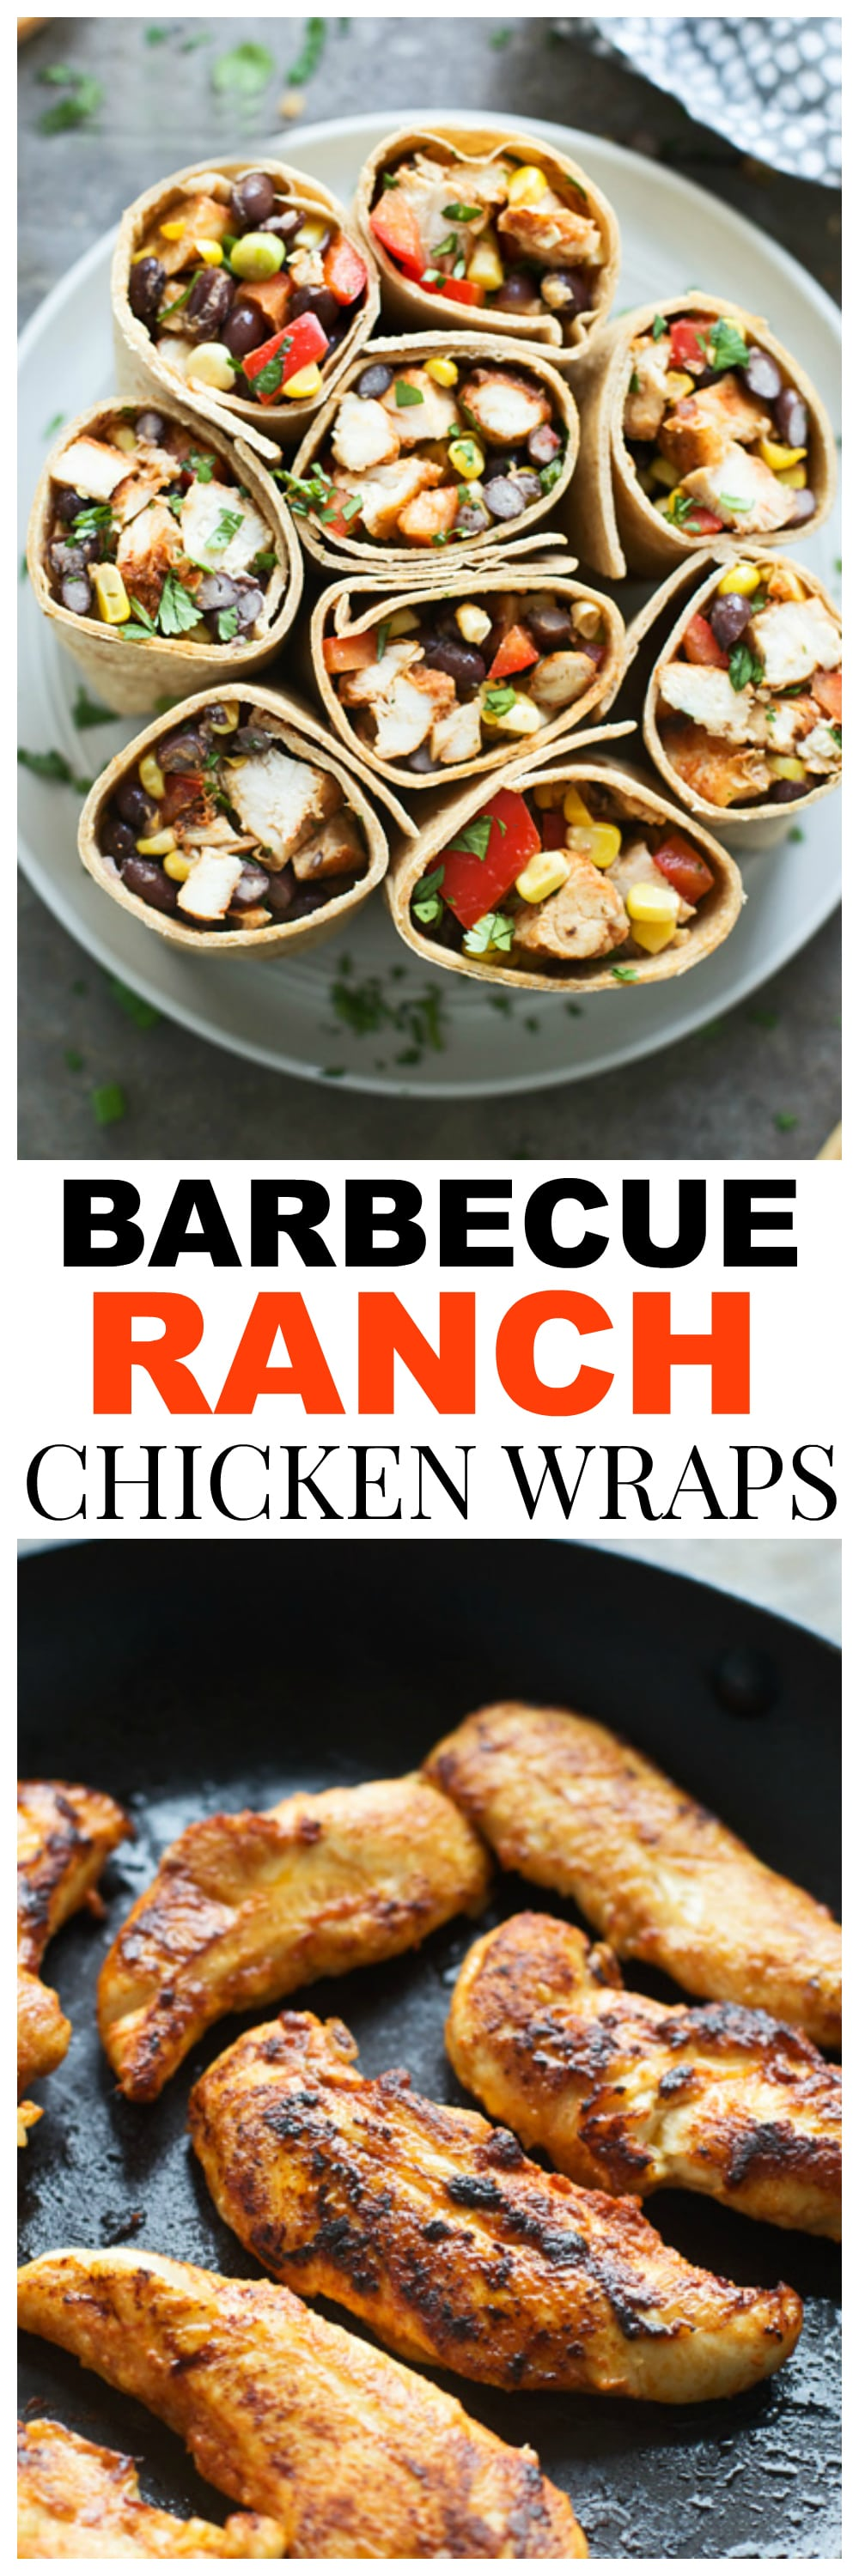 Barbecue Ranch Chicken Wraps